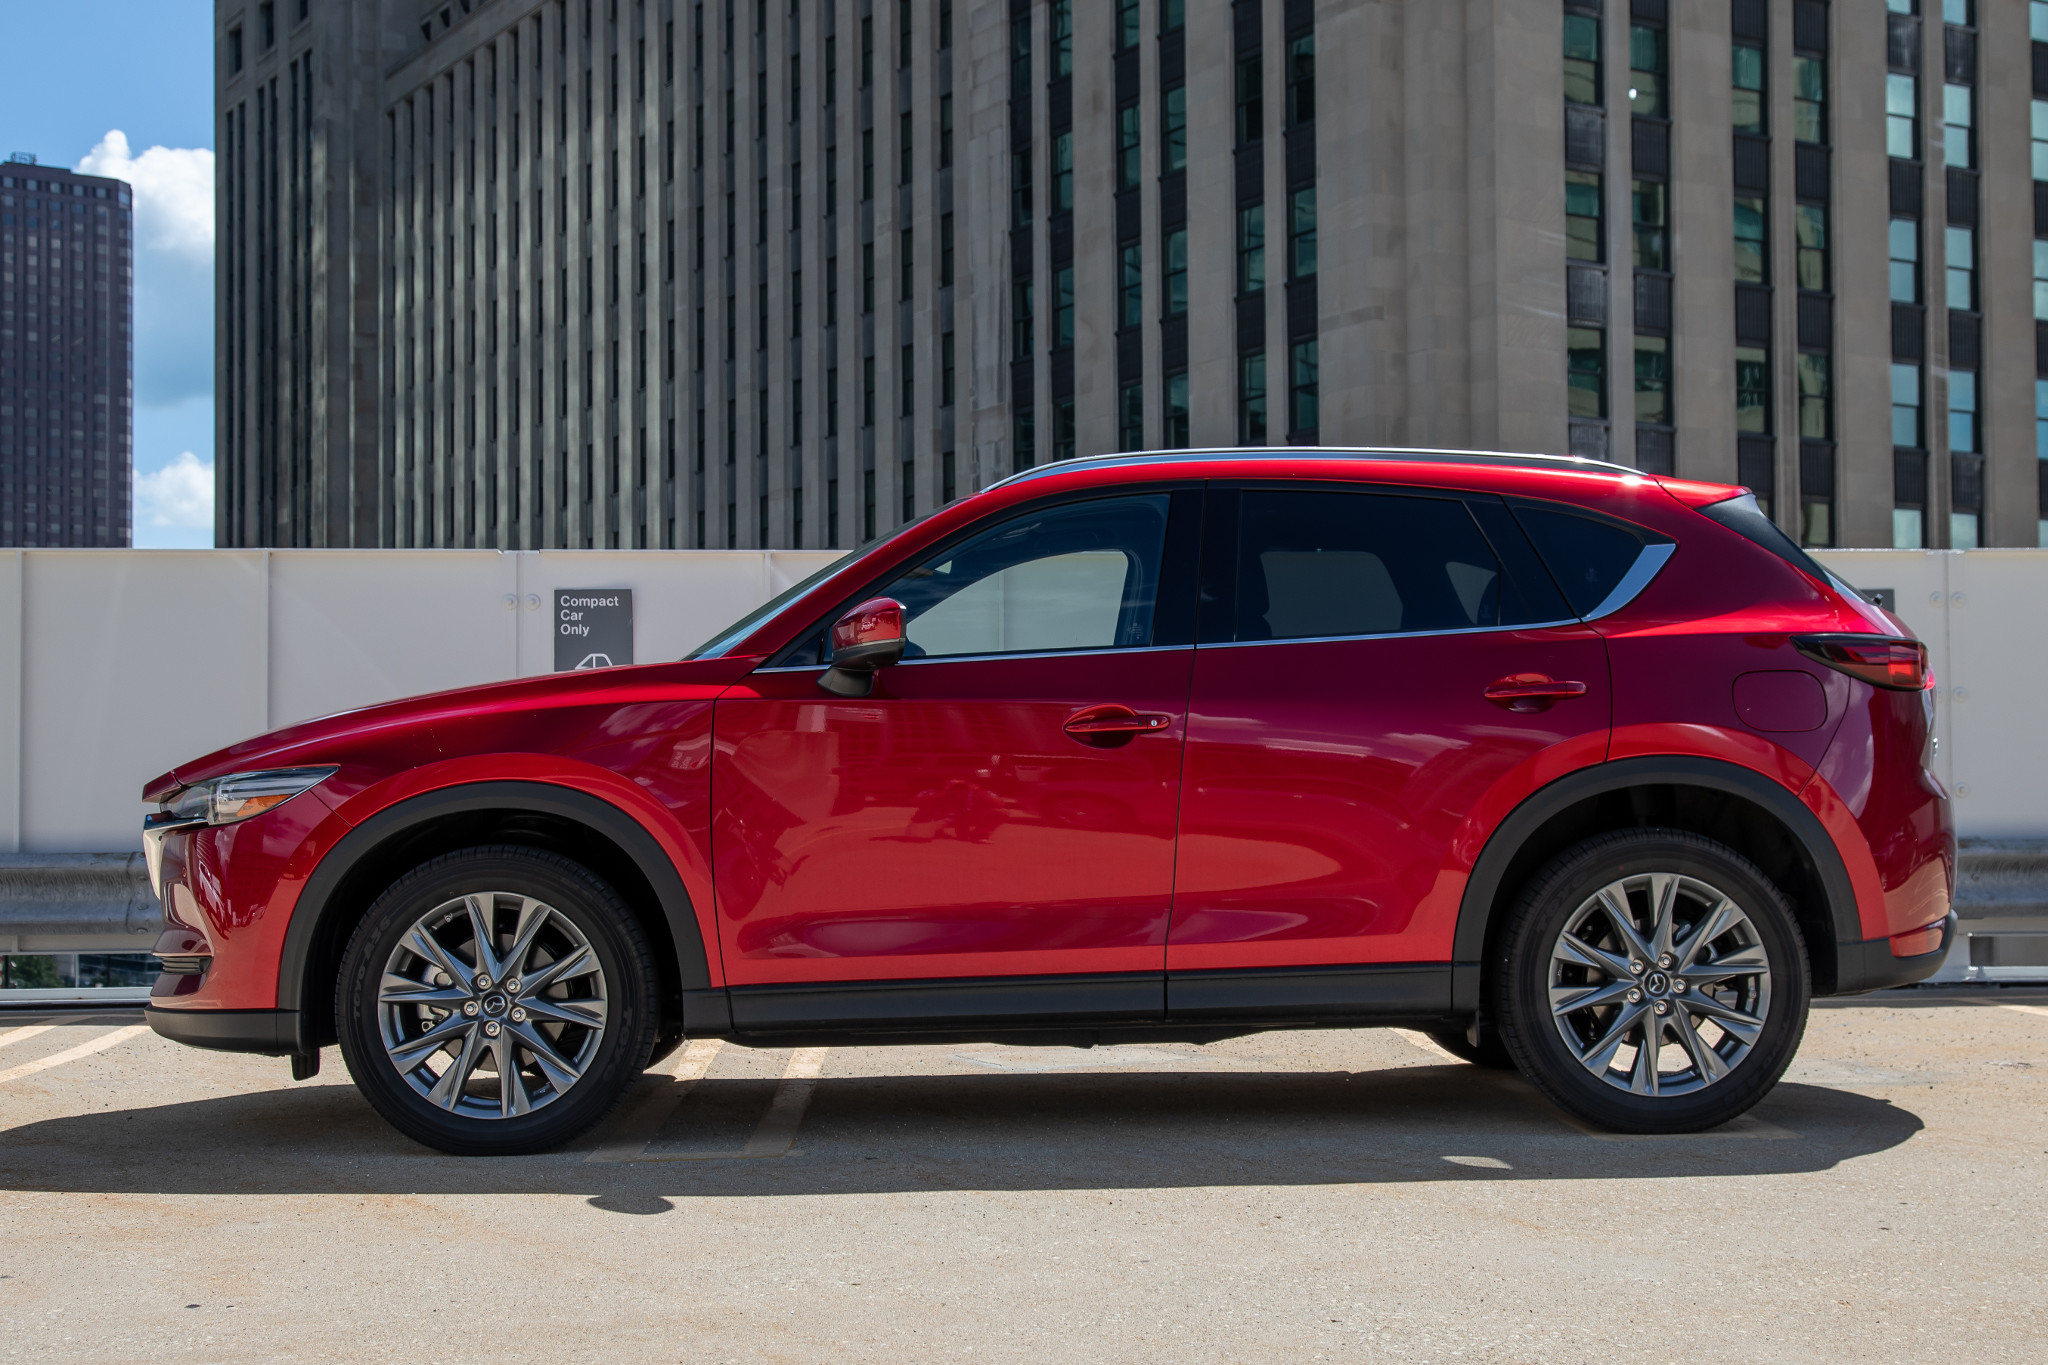 2019 Mazda CX-5: Everything You Need to Know